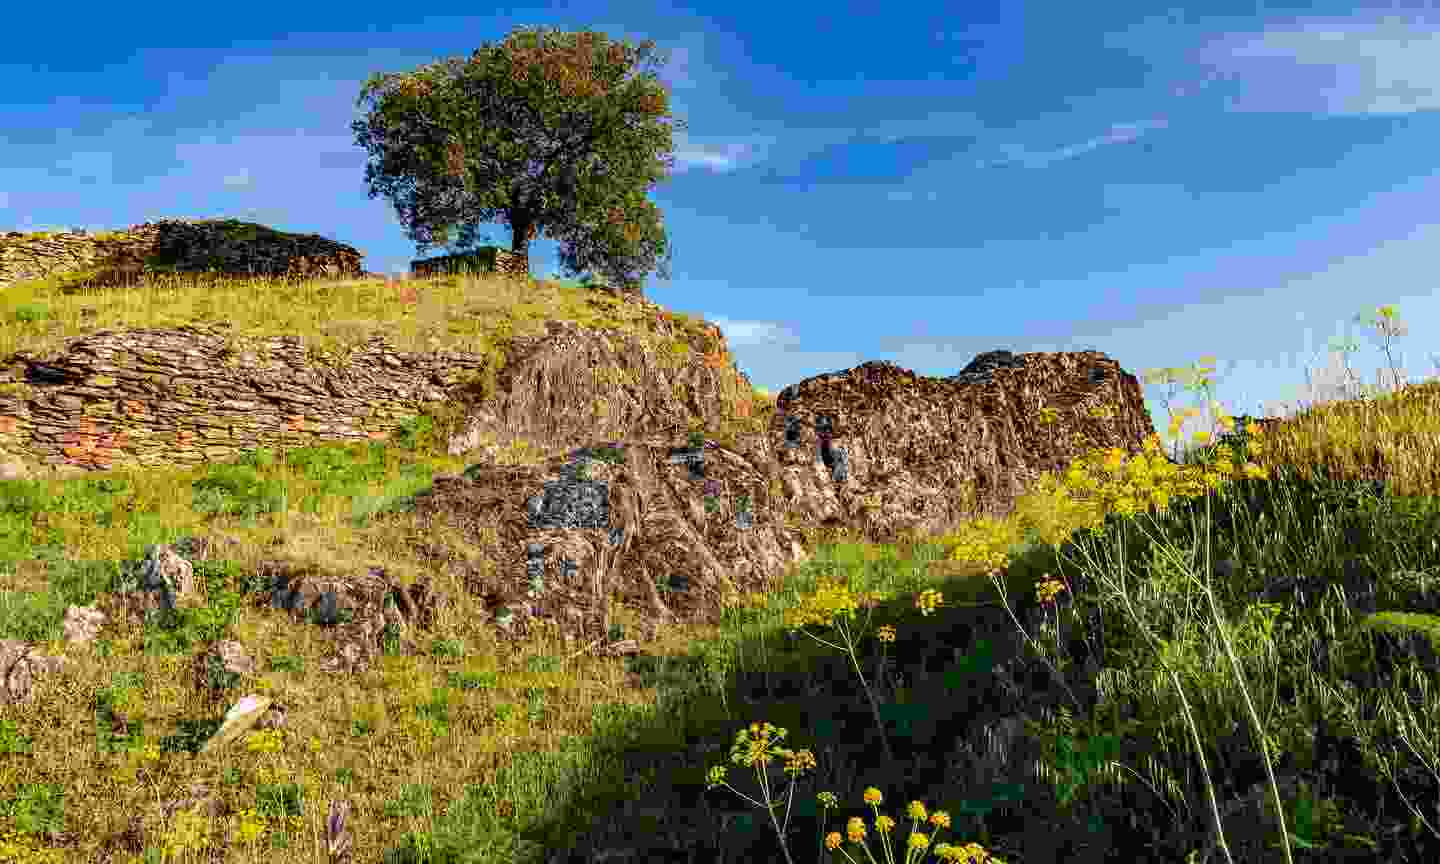 Ancient moorish castle called the Old Castel at Alcoutim (Shutterstock)